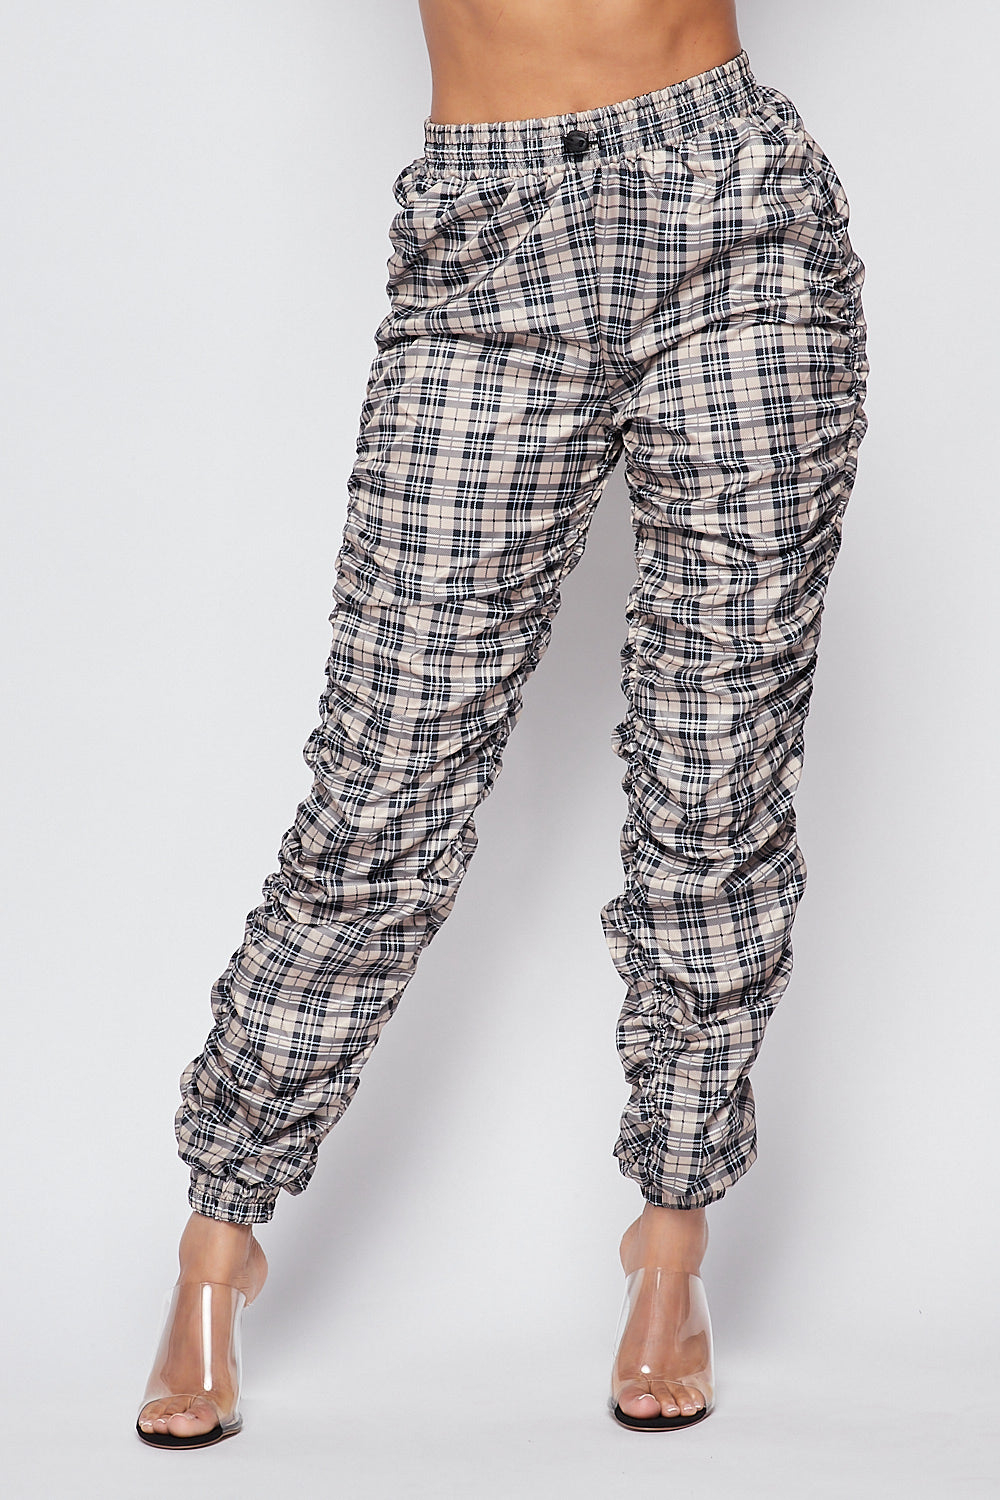 Sexy Checkered Ruched Fitted Jogger Pants - Fashion House USA